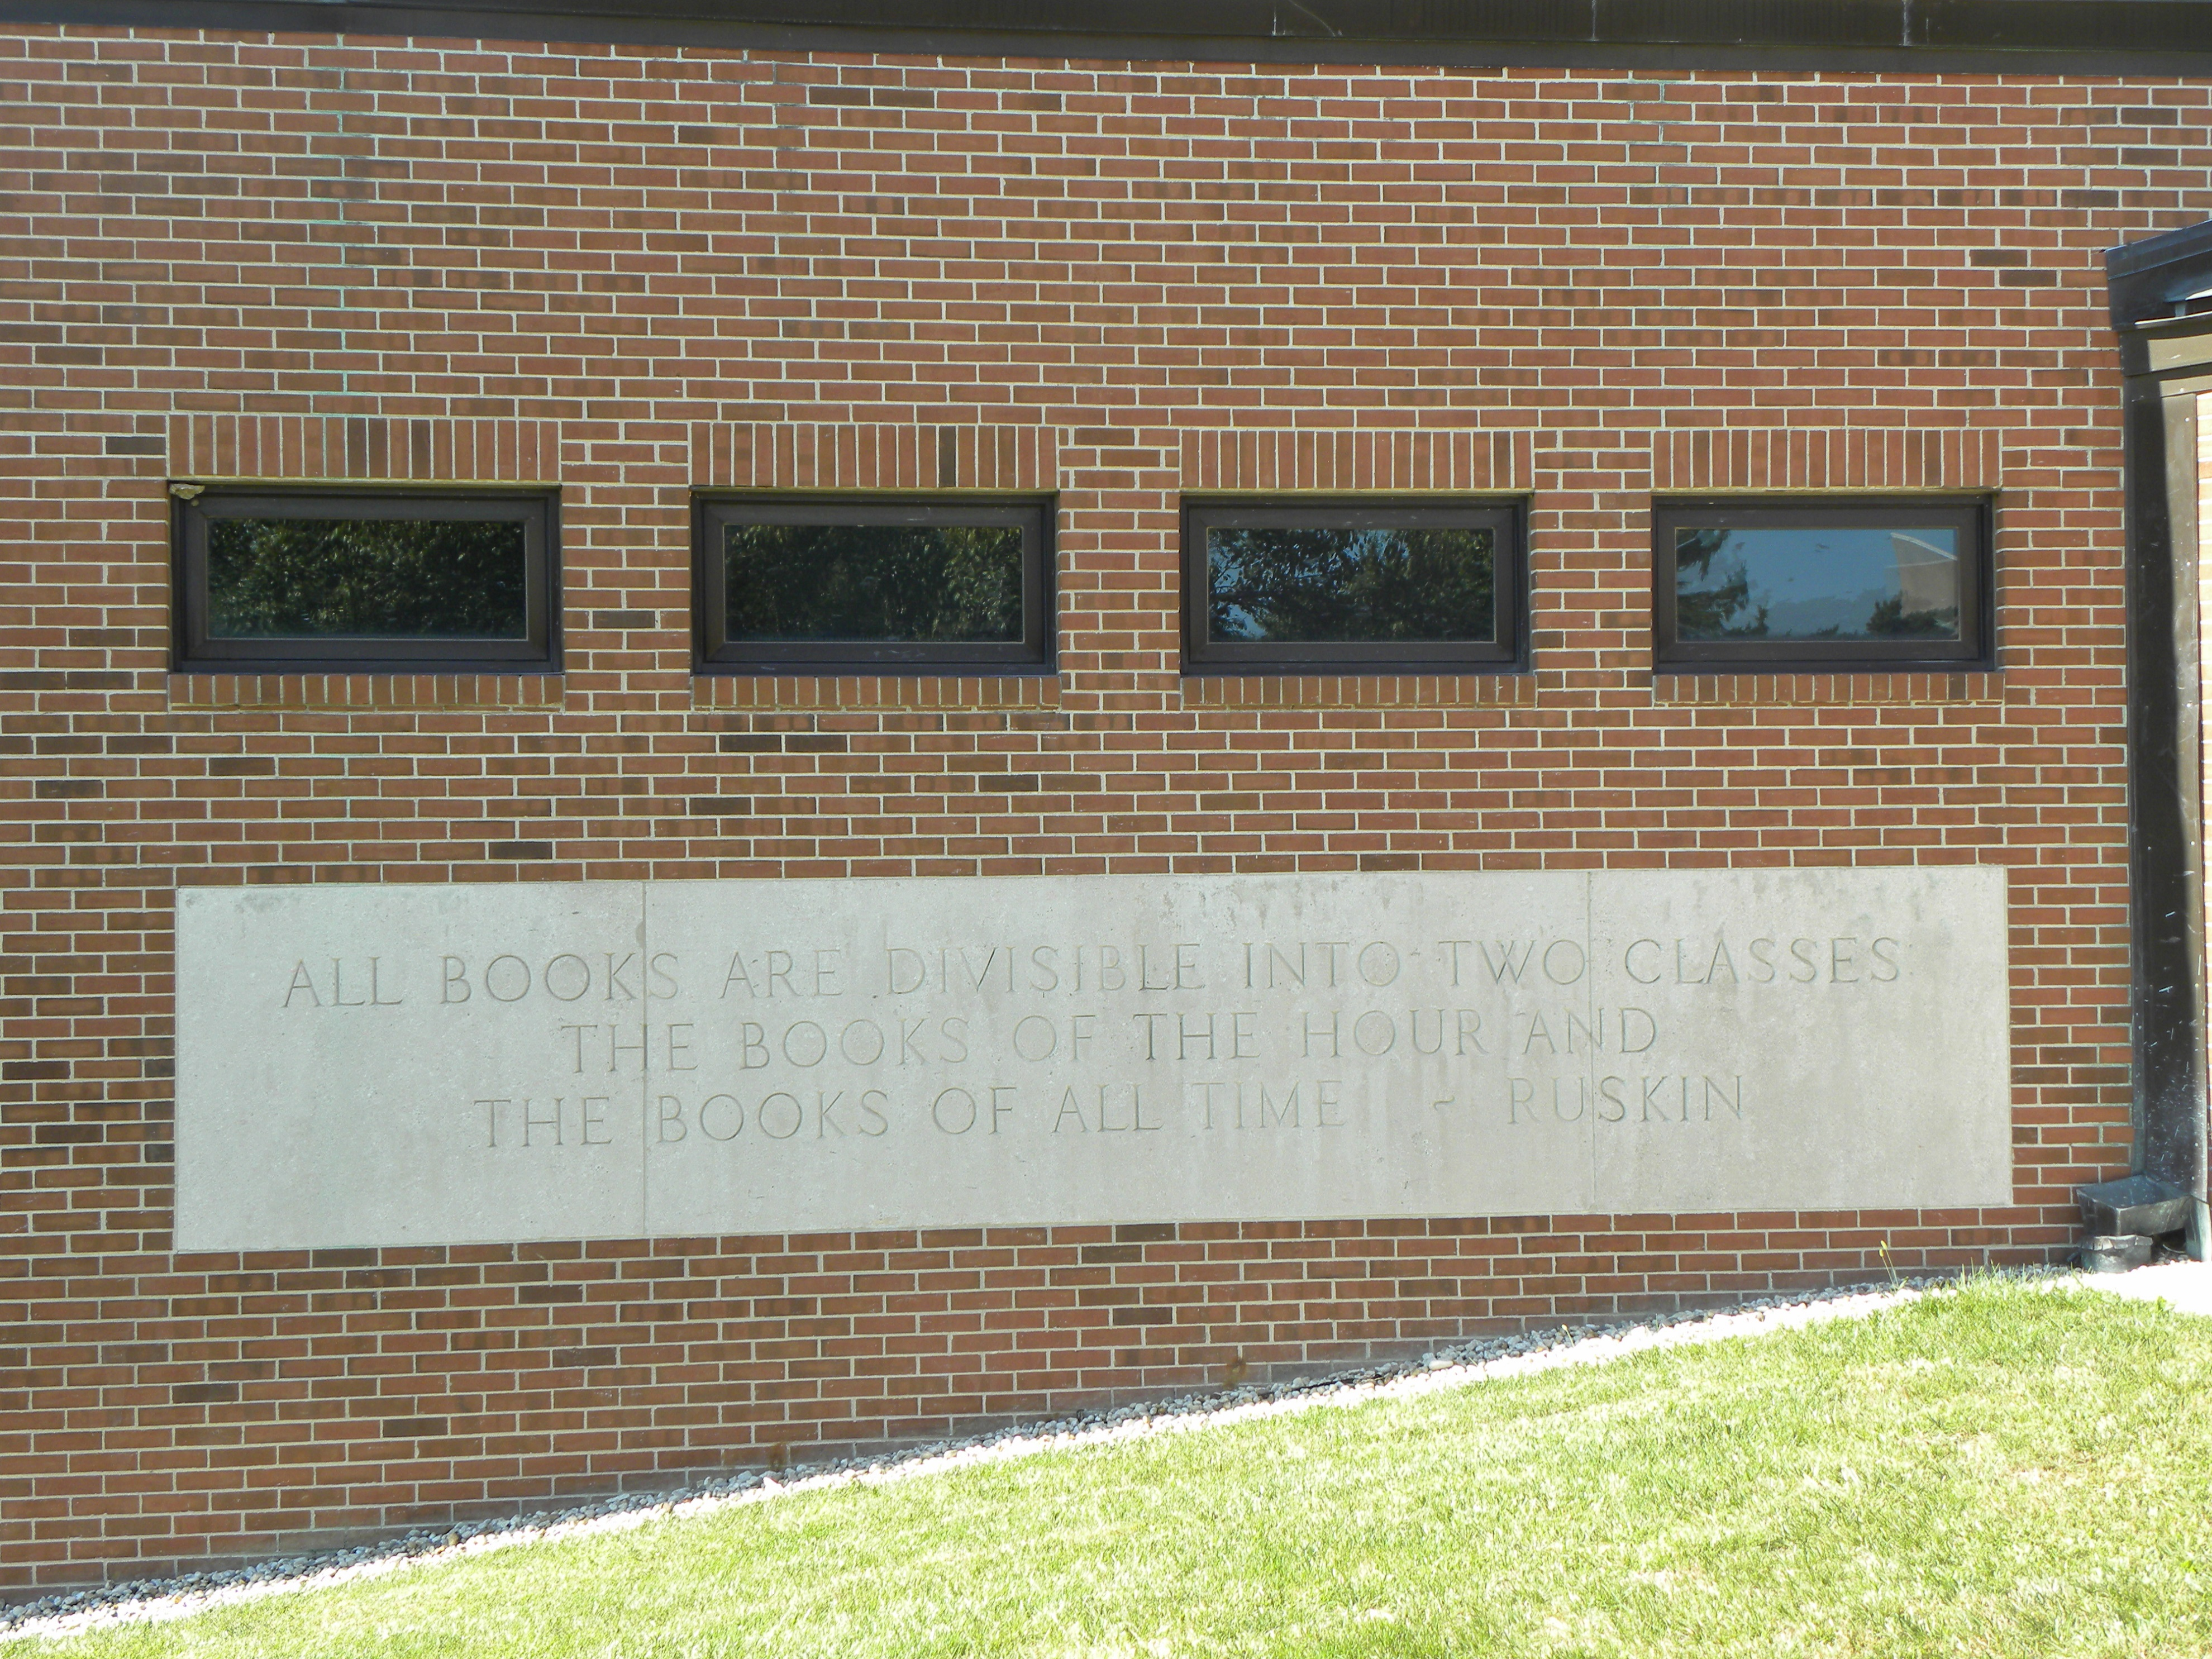 Ruskin quote on ZL east exterior wall